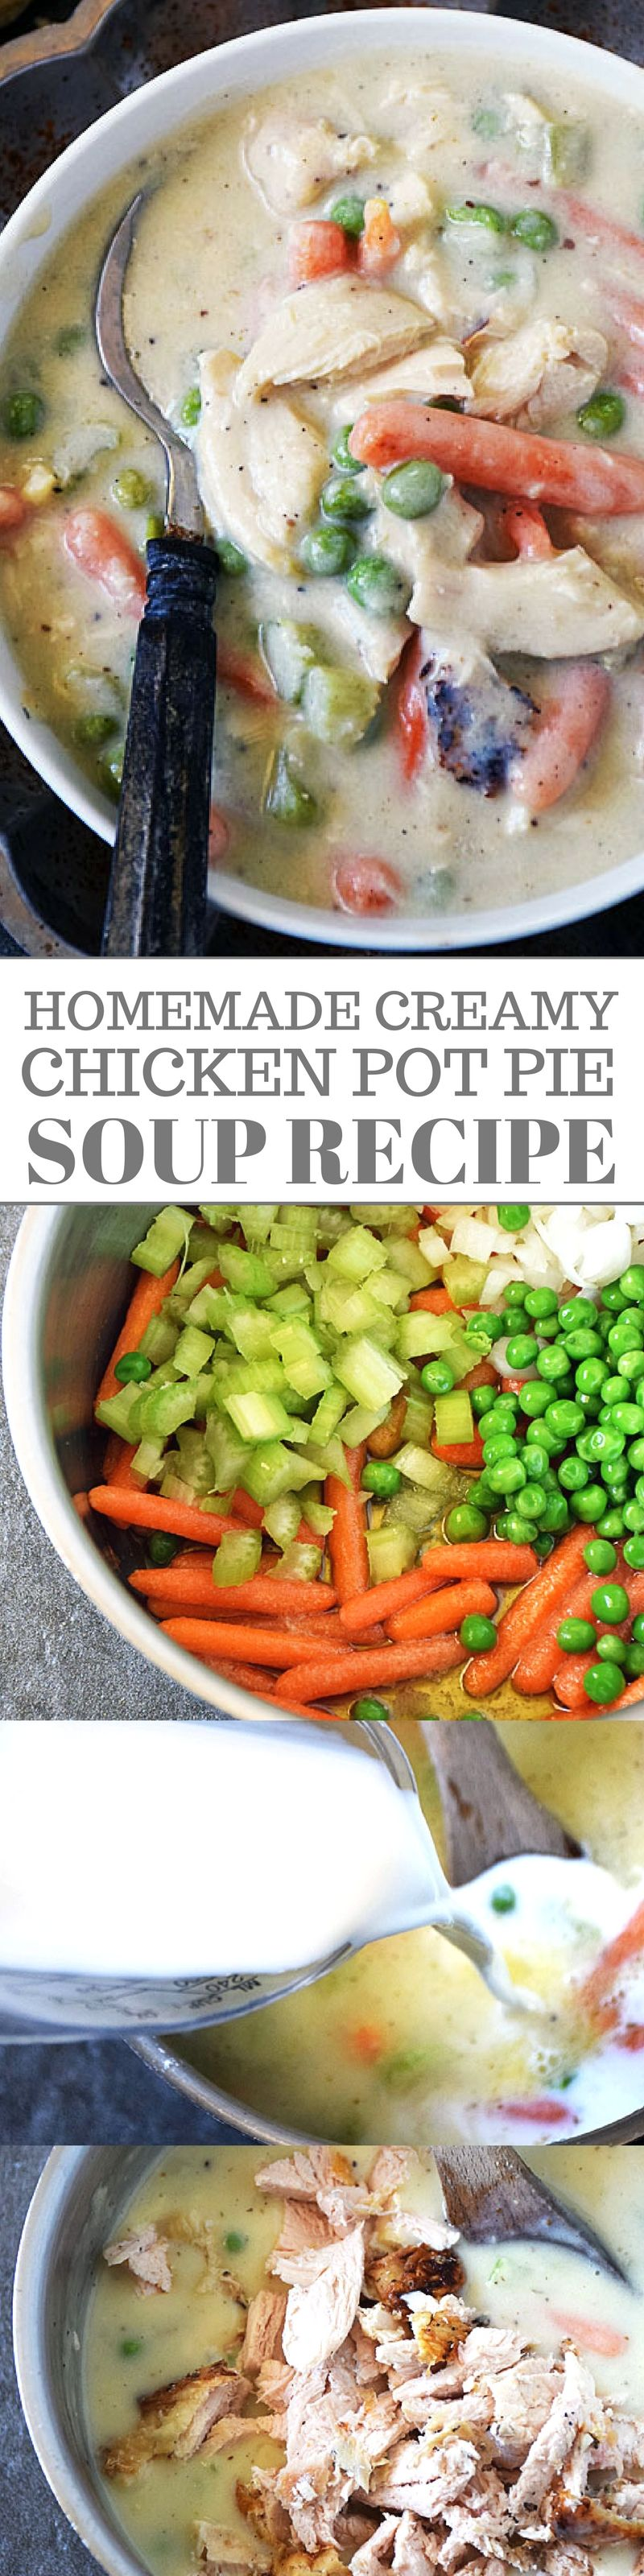 All the comforting goodness of chicken pot pie without all the fuss! Make life taste good with Creamy Chicken Pot Pie Soup today! Comfort food at its finest and perfect for rainy days. #chickenpotpie #comfortfoodrecipes #souprecipes #easyrecipes #chickenrecipes